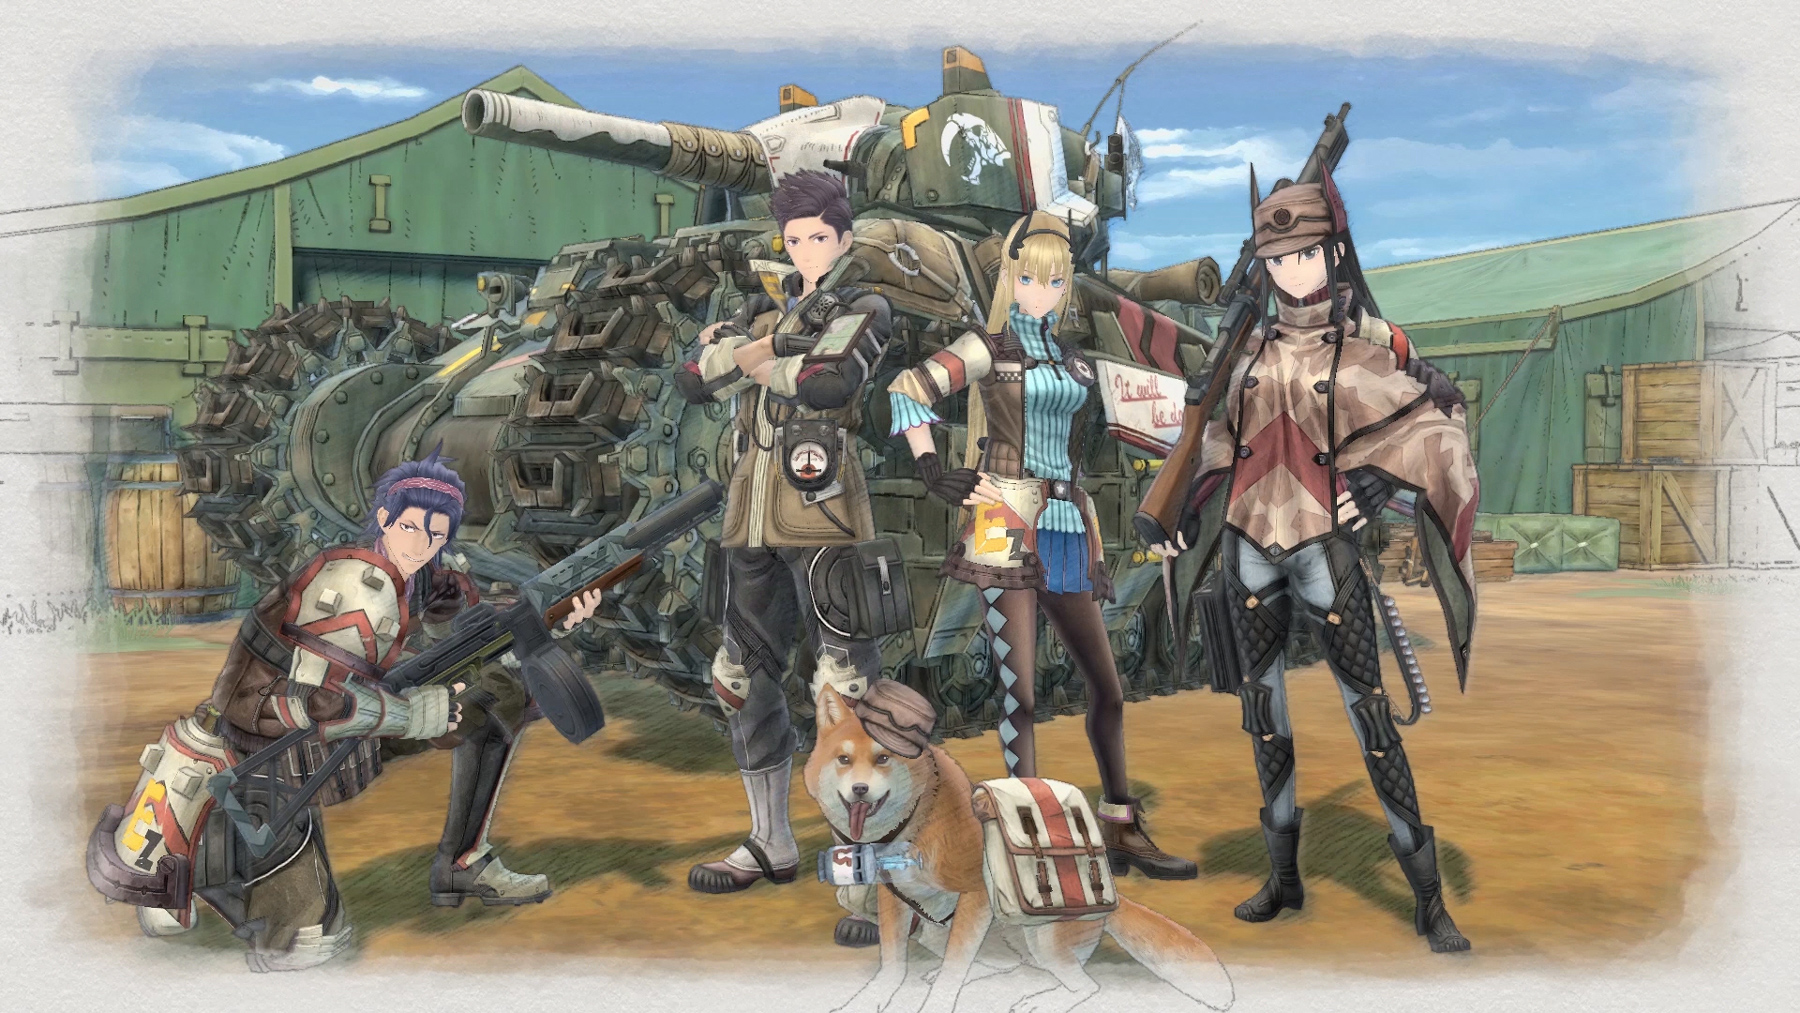 'Valkyria Chronicles' sequel will go back to its strategy roots